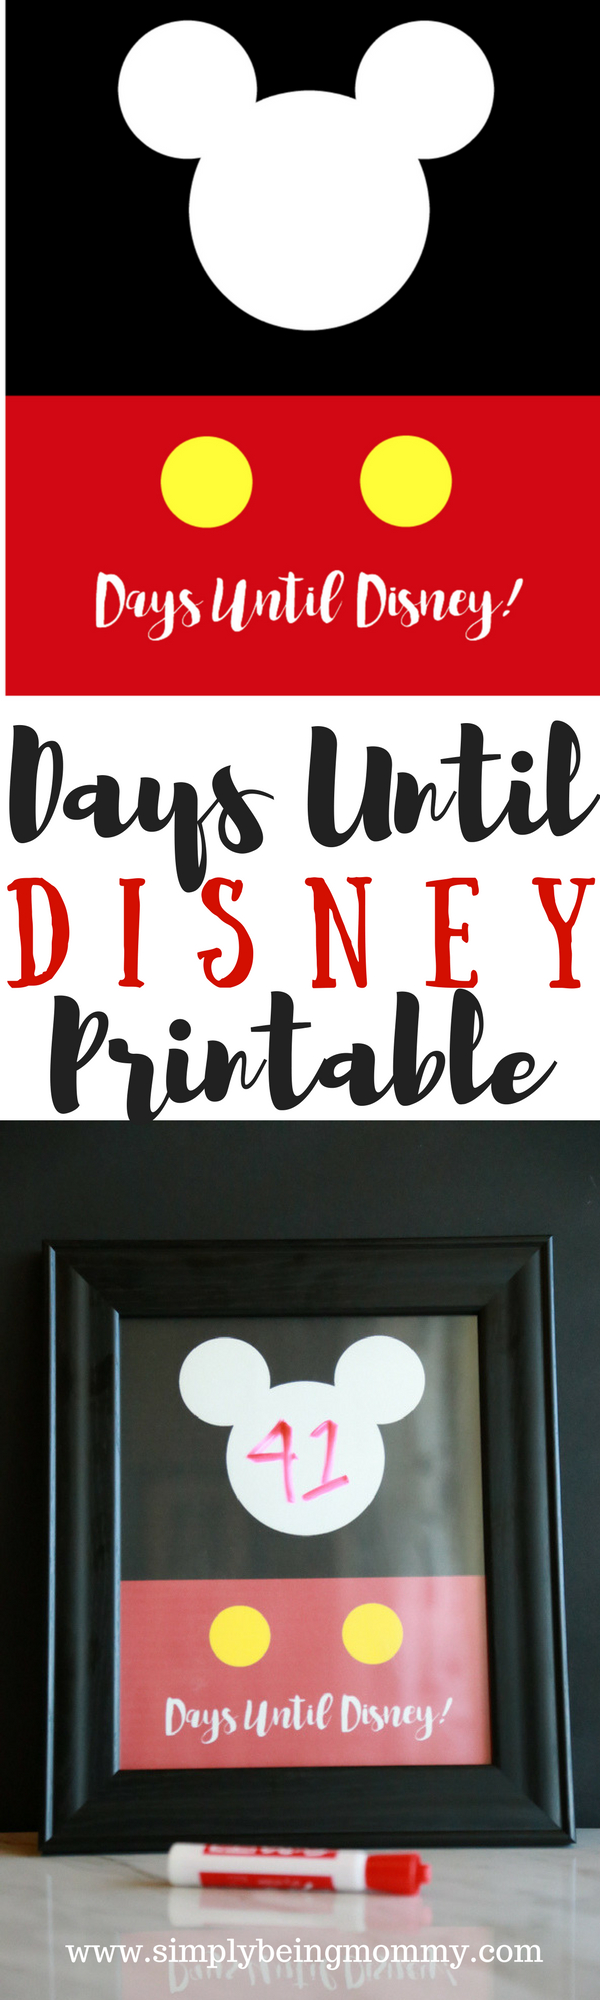 Days Until Disney Printable | Simply Being Mommy